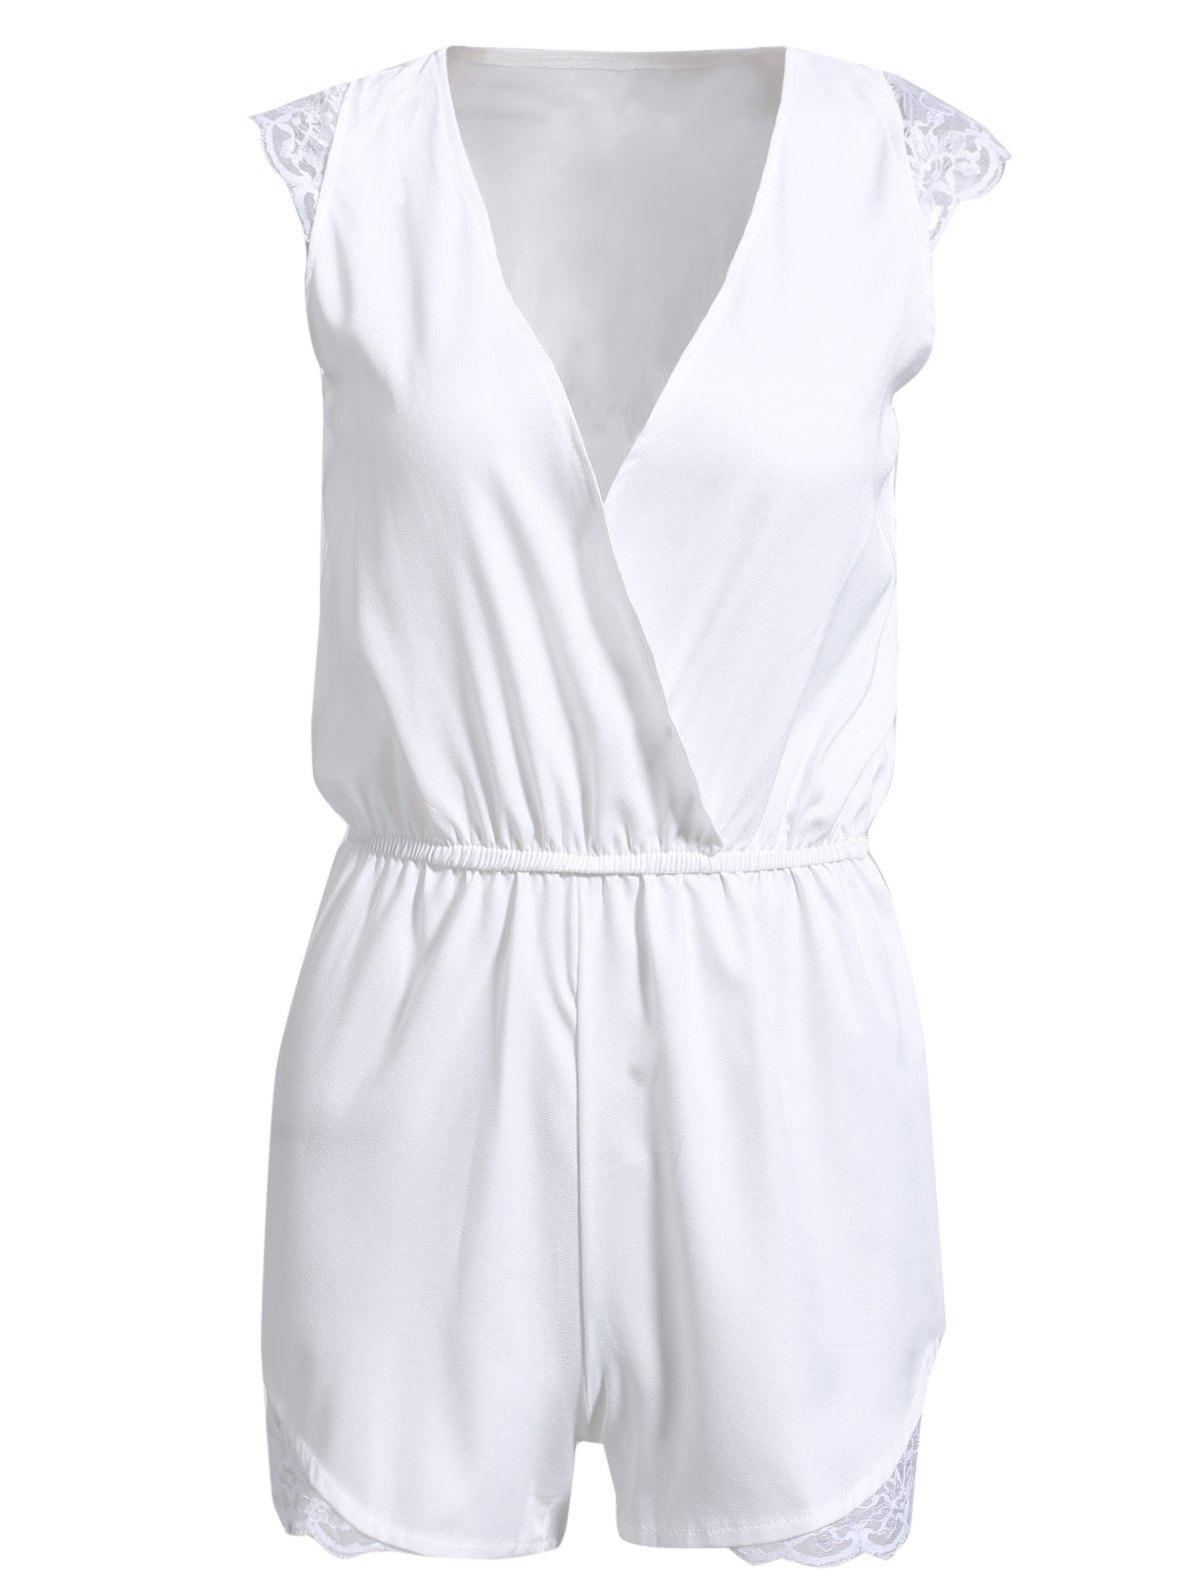 Trendy Plunging Neck Sleeveless Lace Spliced Solid Color Romper For Women - WHITE M